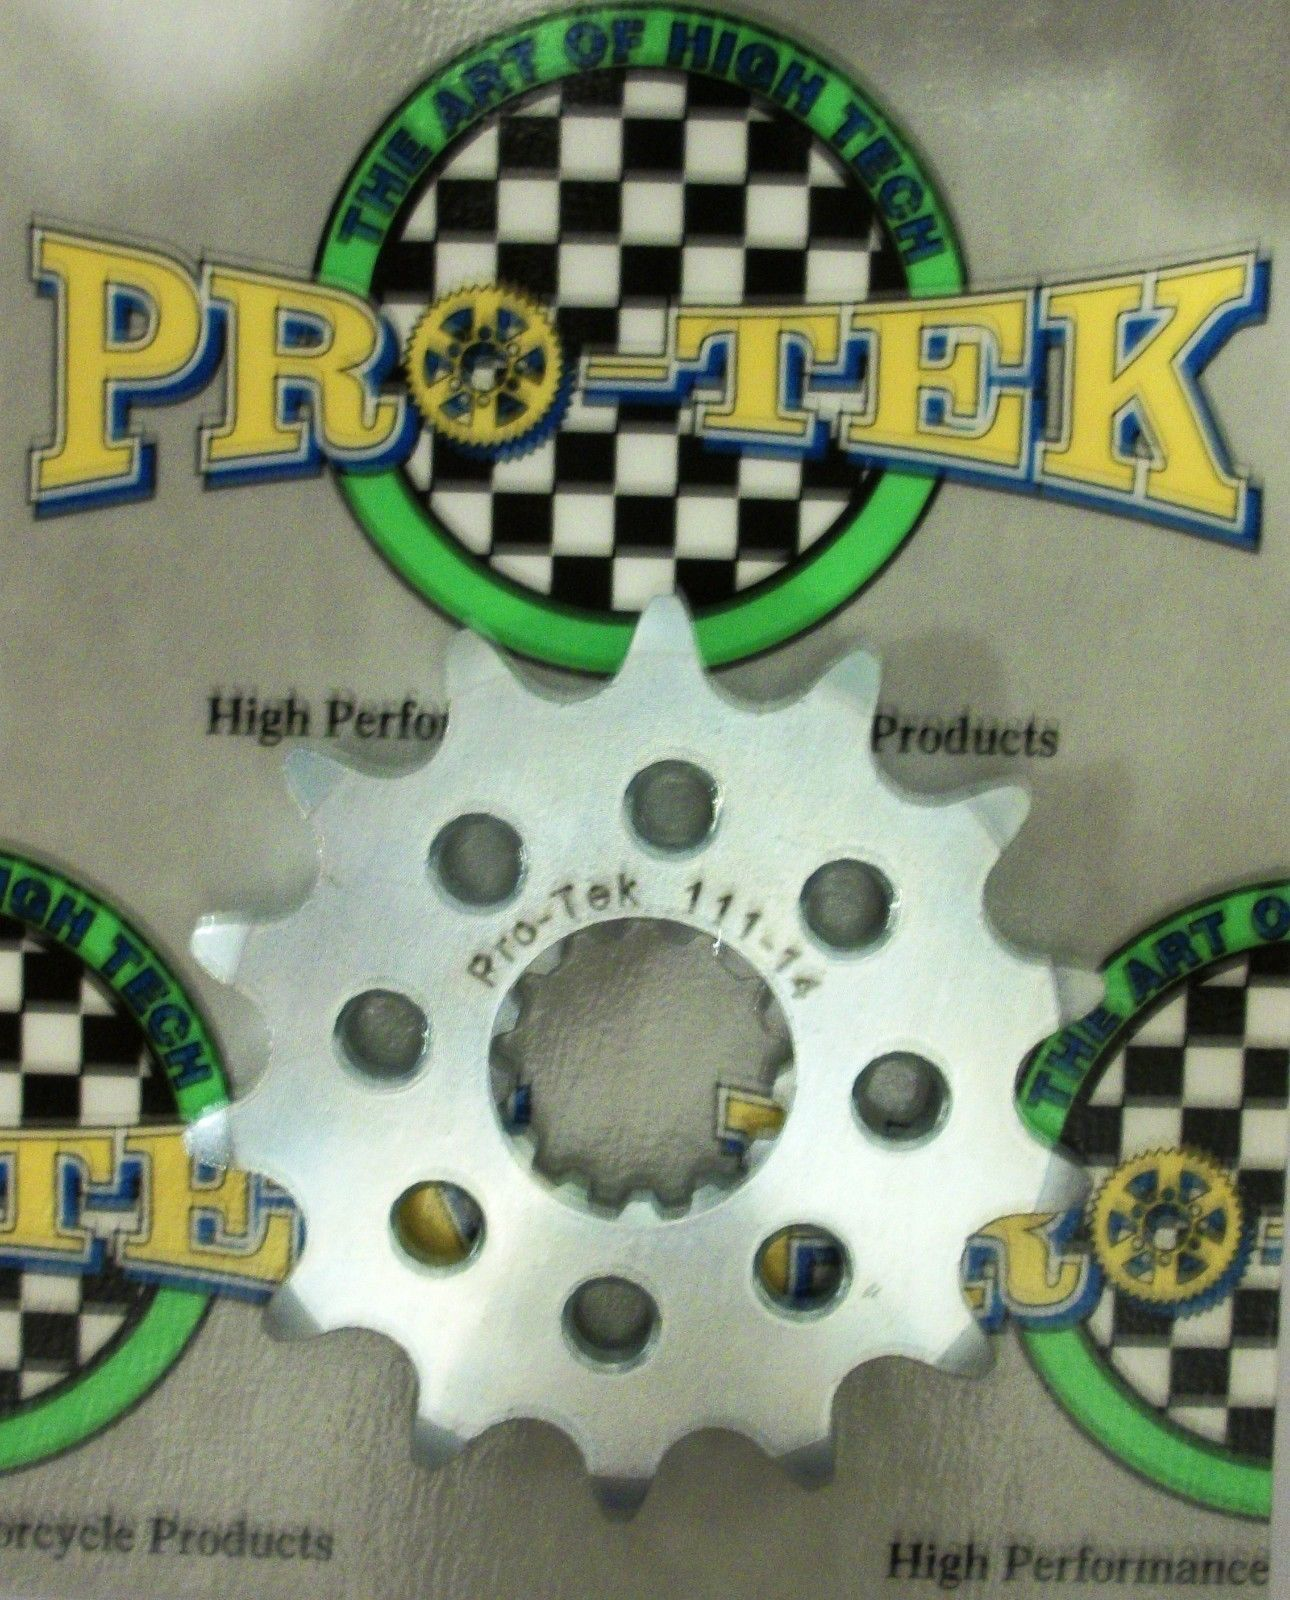 Primary image for Suzuki Front Sprocket 525 Pitch 13T 14T 15T 16T 17T 2014 2015 2016 2017 GSXR750